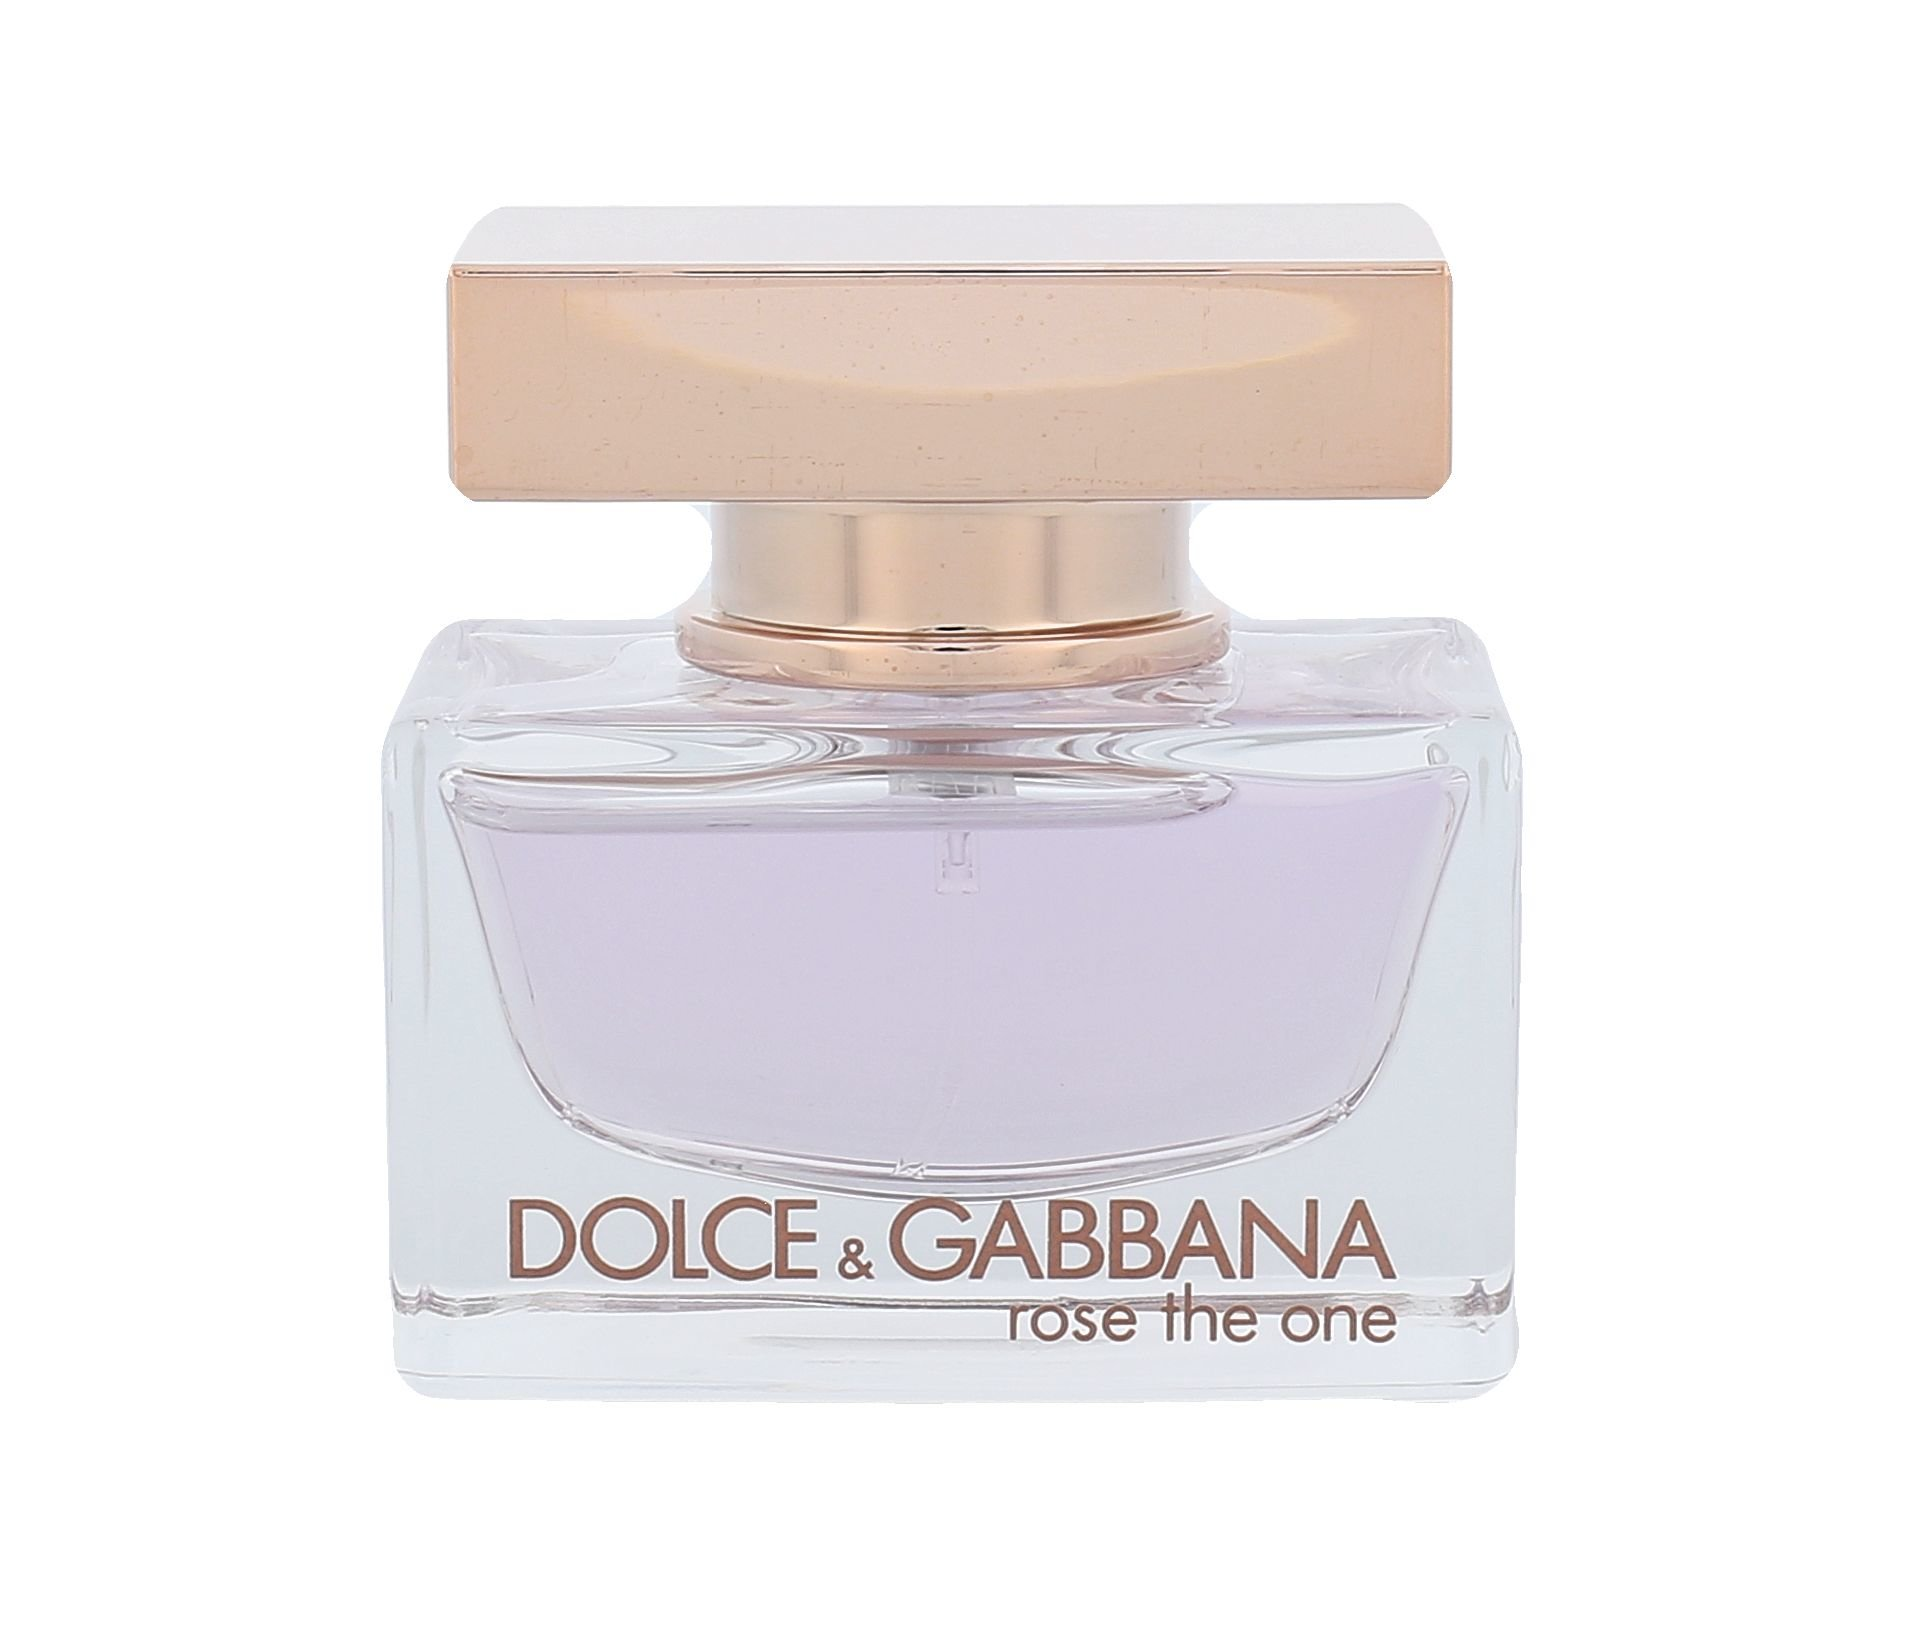 Dolce&Gabbana The One Rose, Parfumovaná voda 30ml